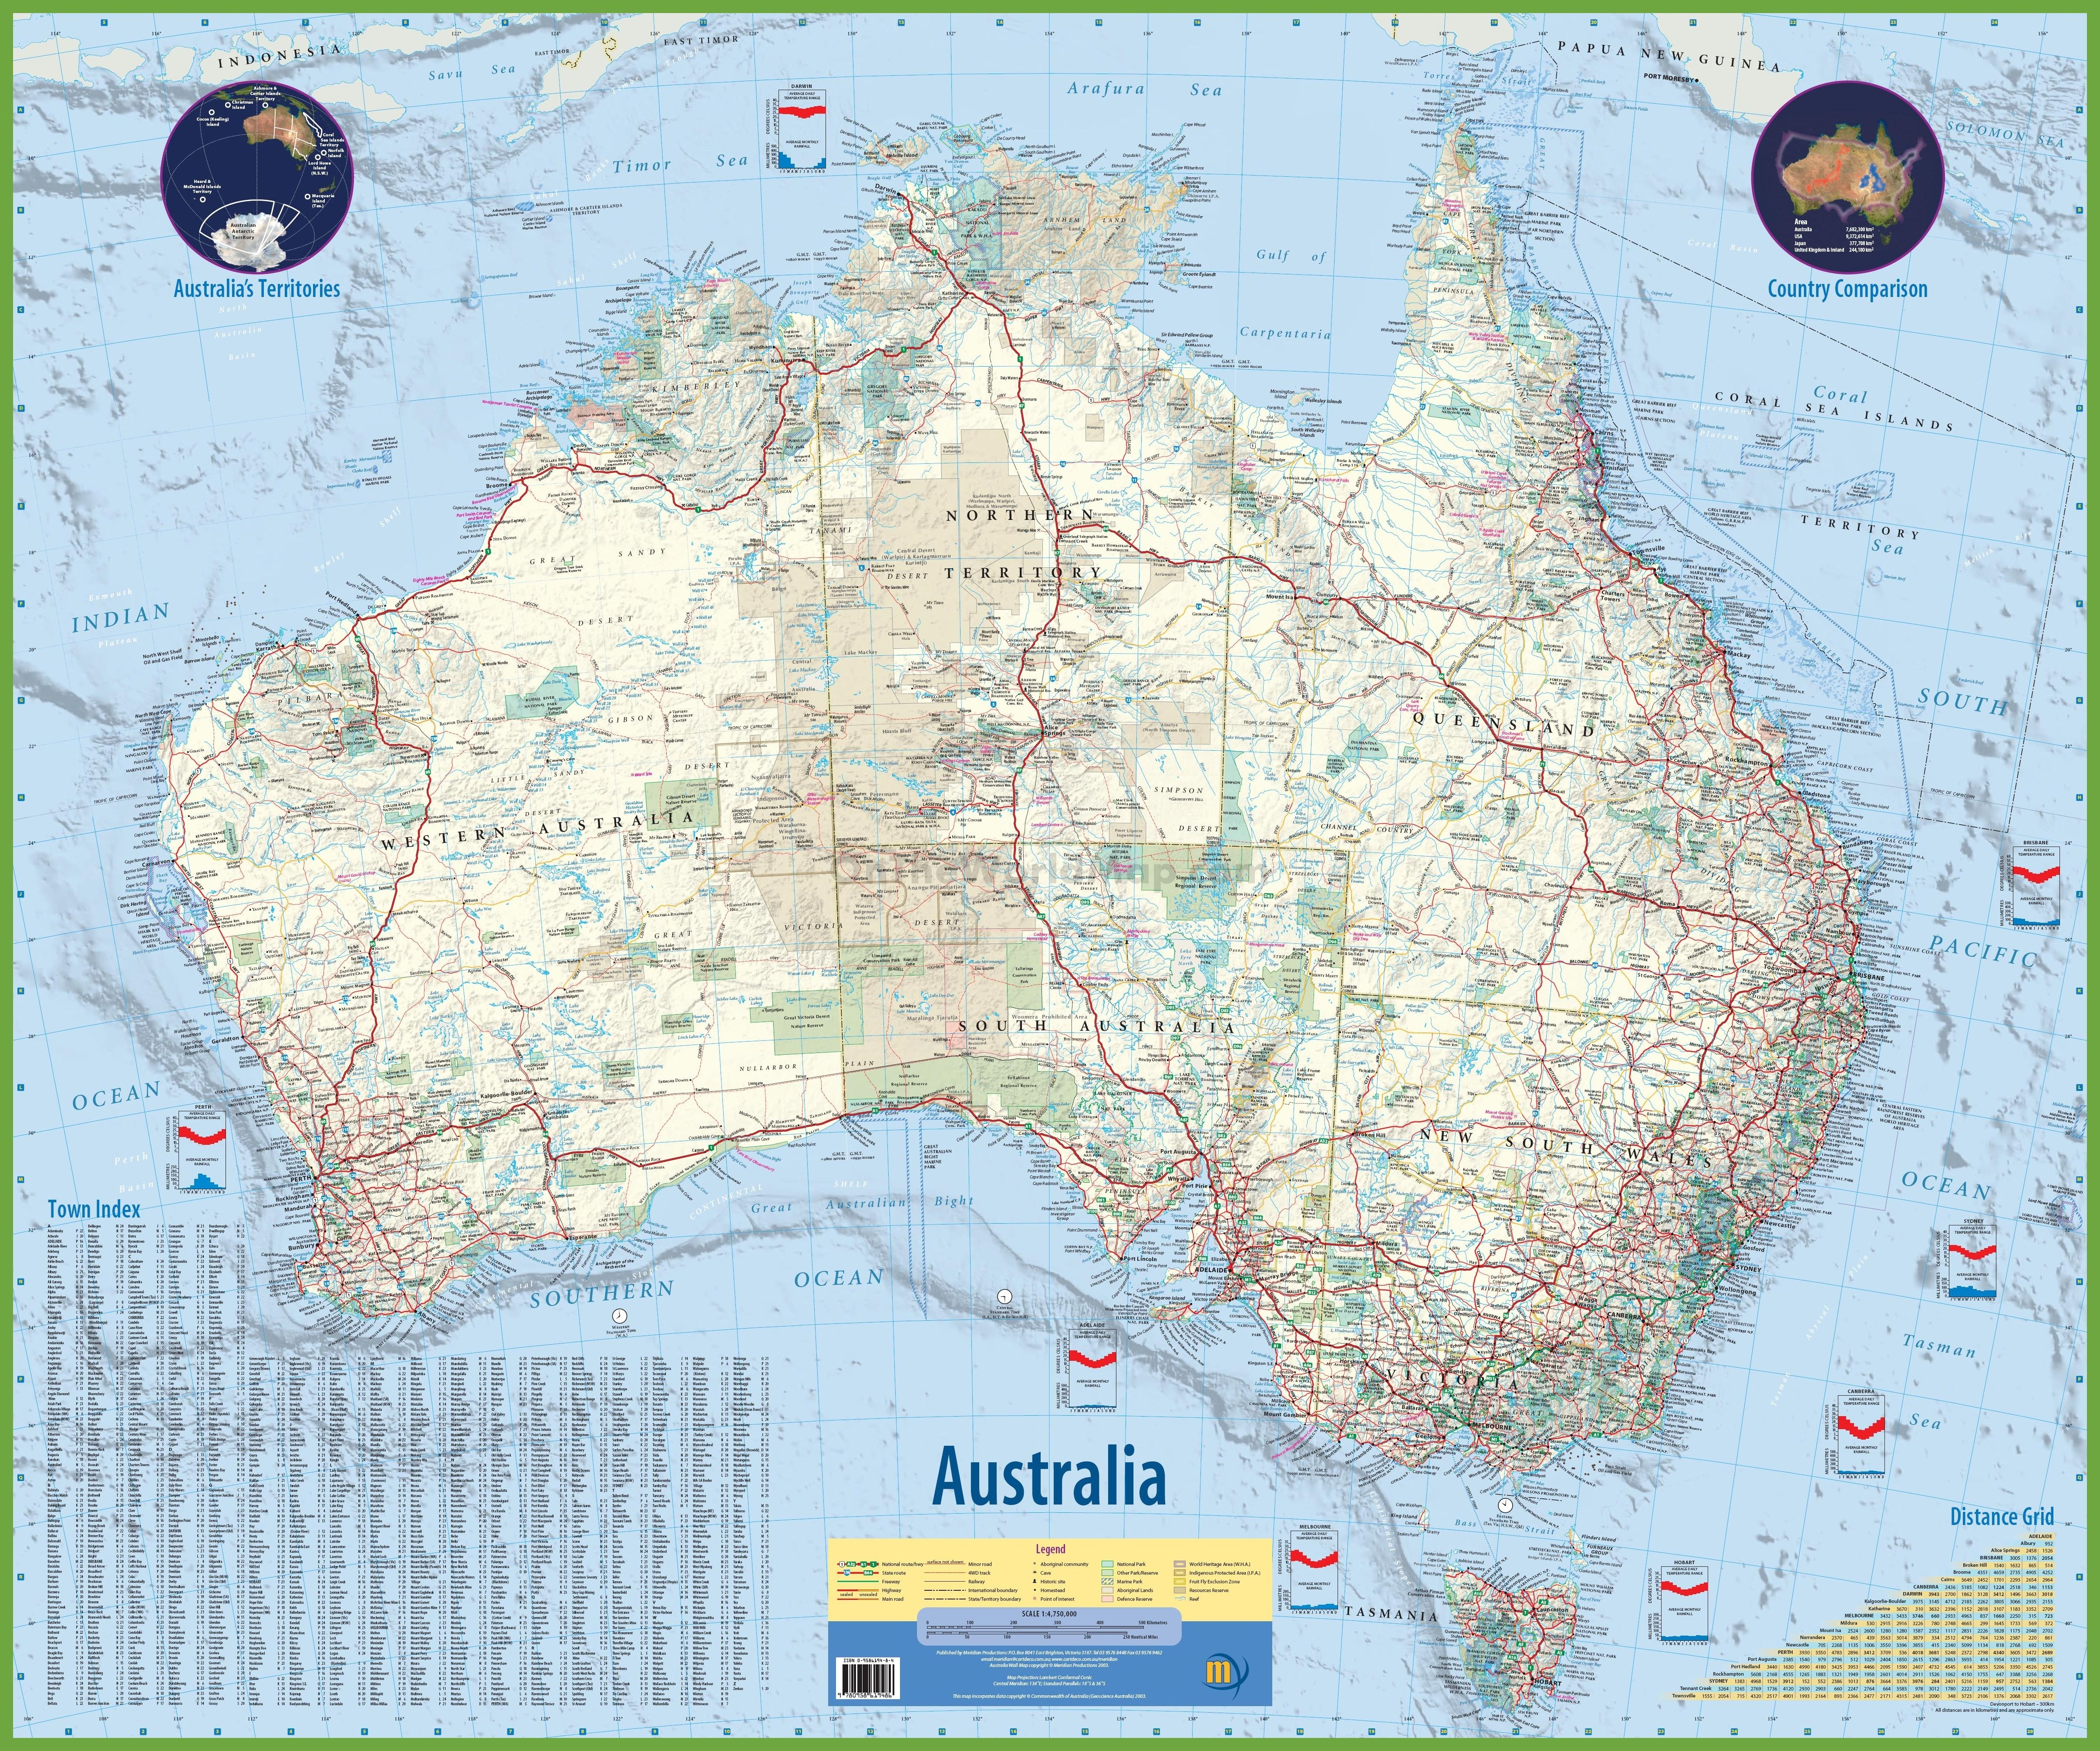 Australia Map With Cities And Towns.Large Detailed Map Of Australia With Cities And Towns Kombi Ideas